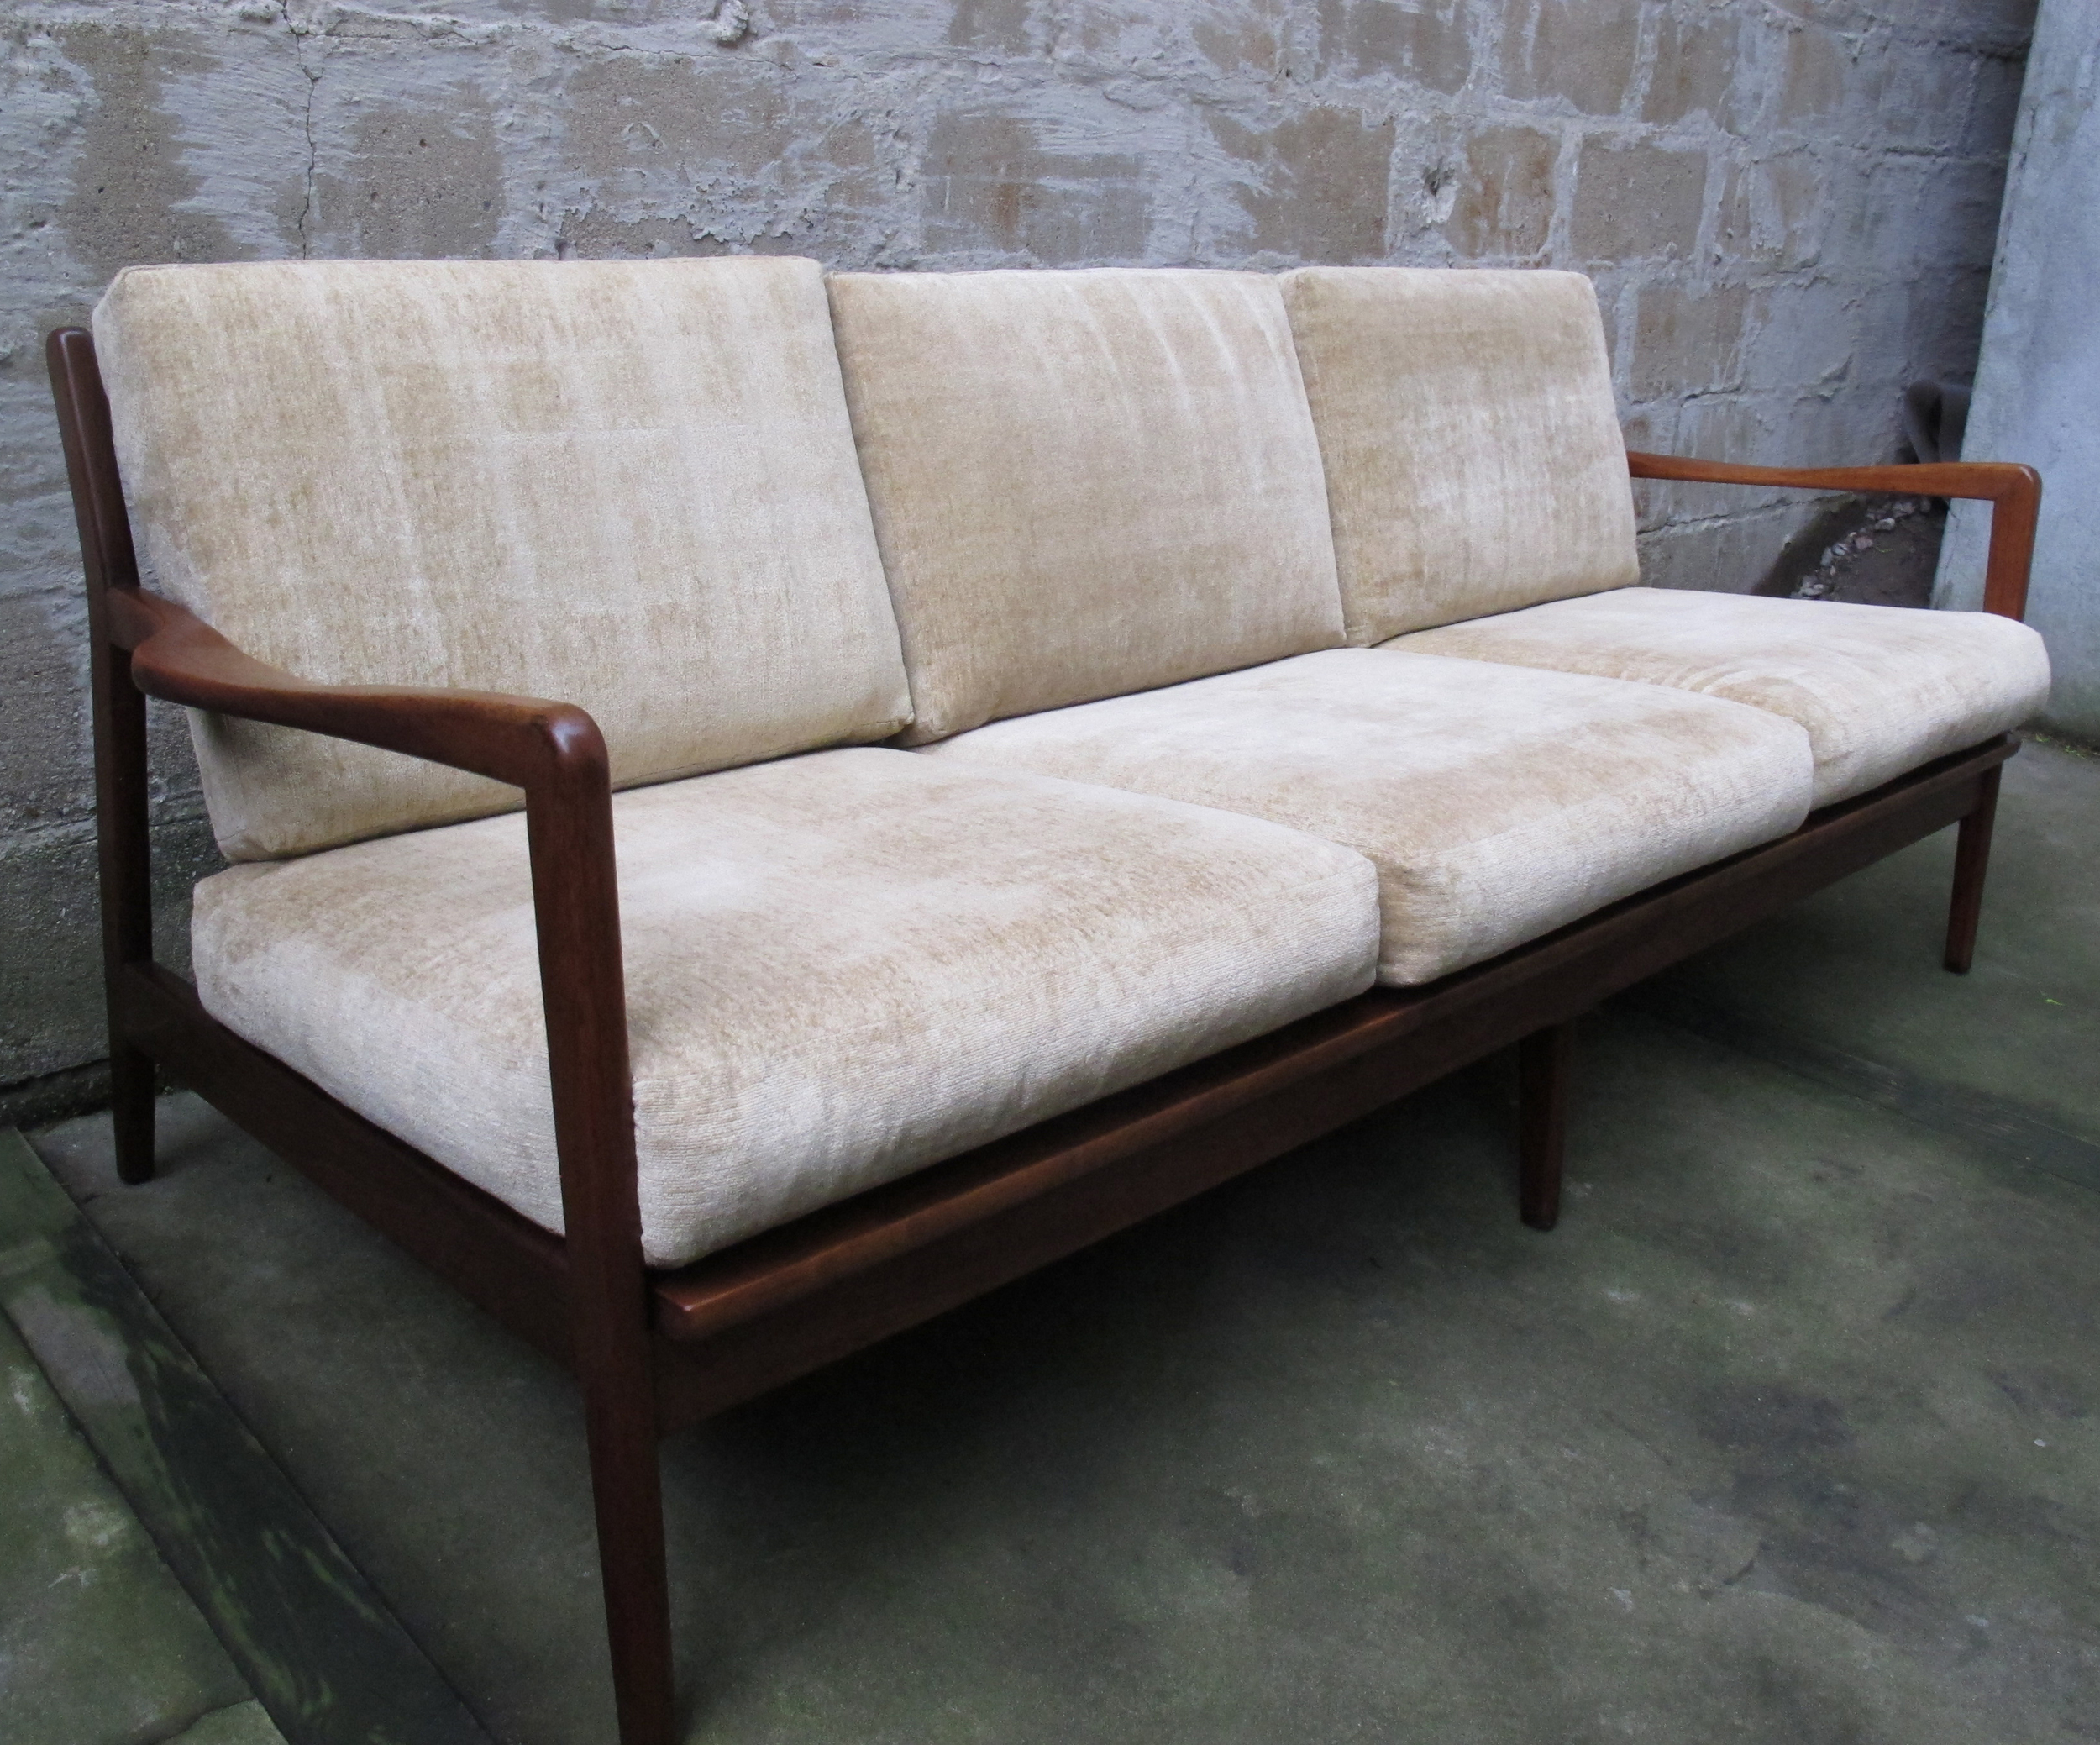 DANISH MODERN THREE SEAT WALNUT SOFA AFTER KOFOD LARSEN